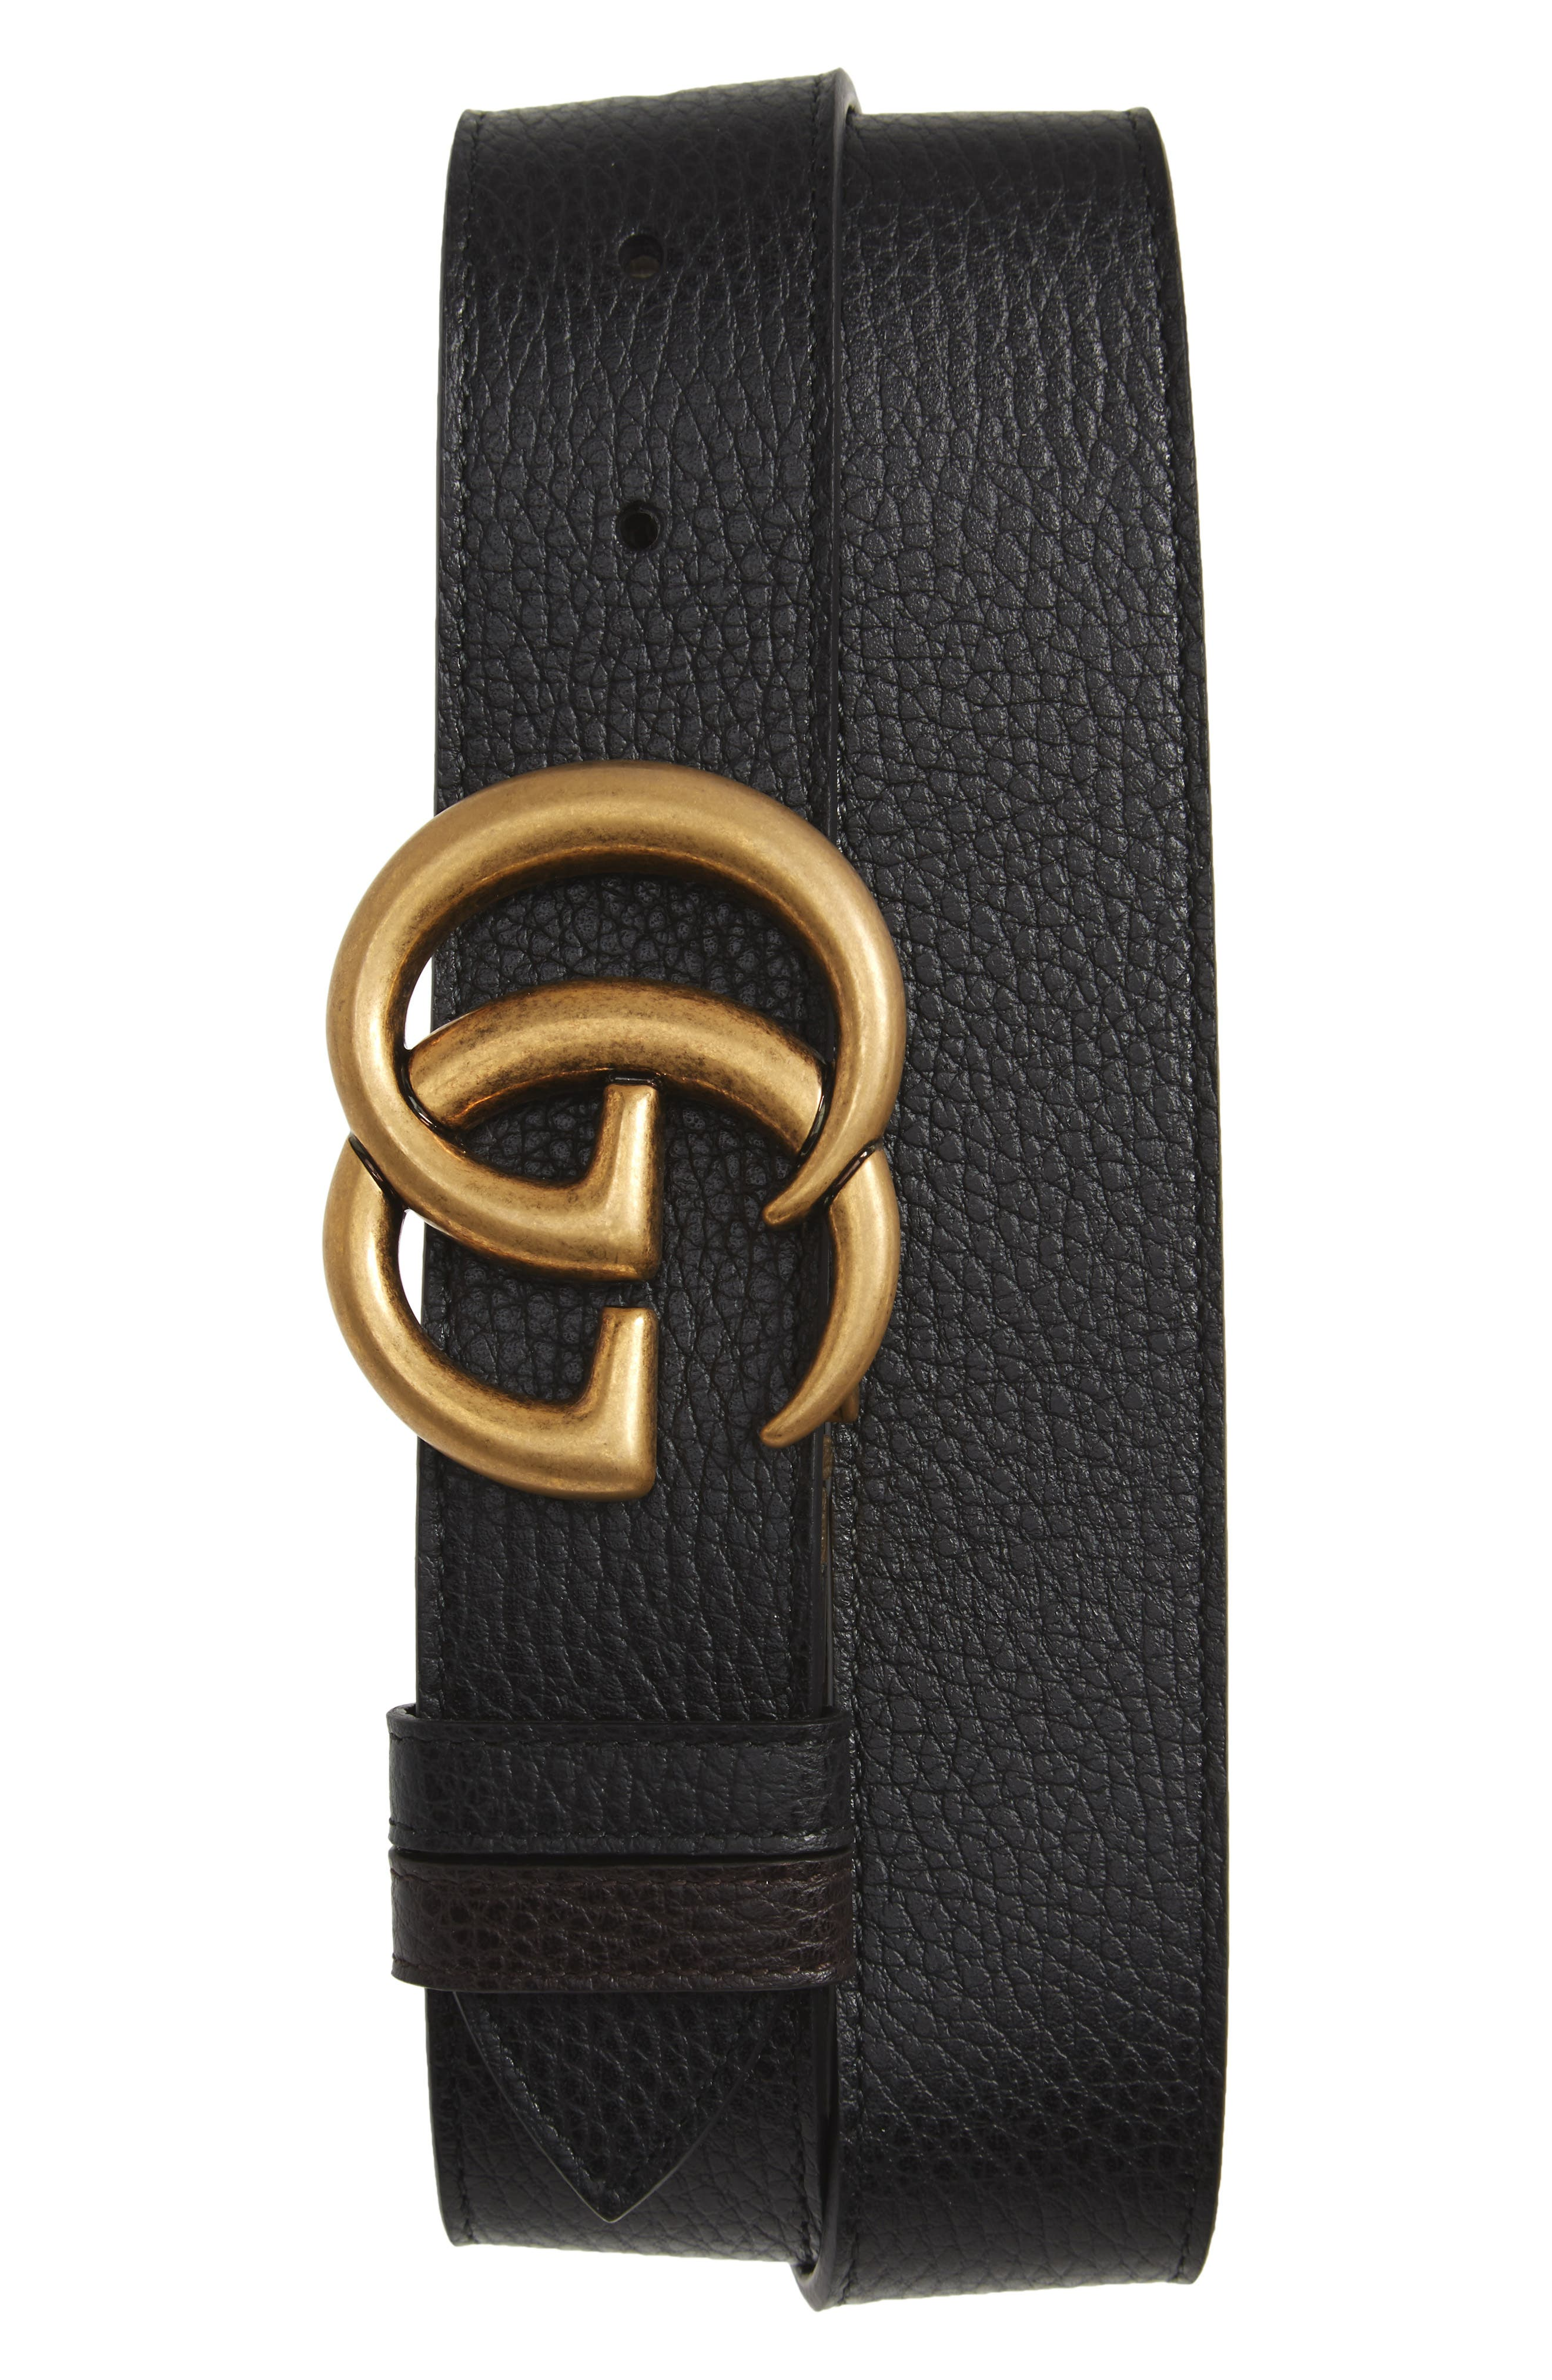 GG Marmont Reversible Leather Belt,                         Main,                         color, Black/ Cocoa